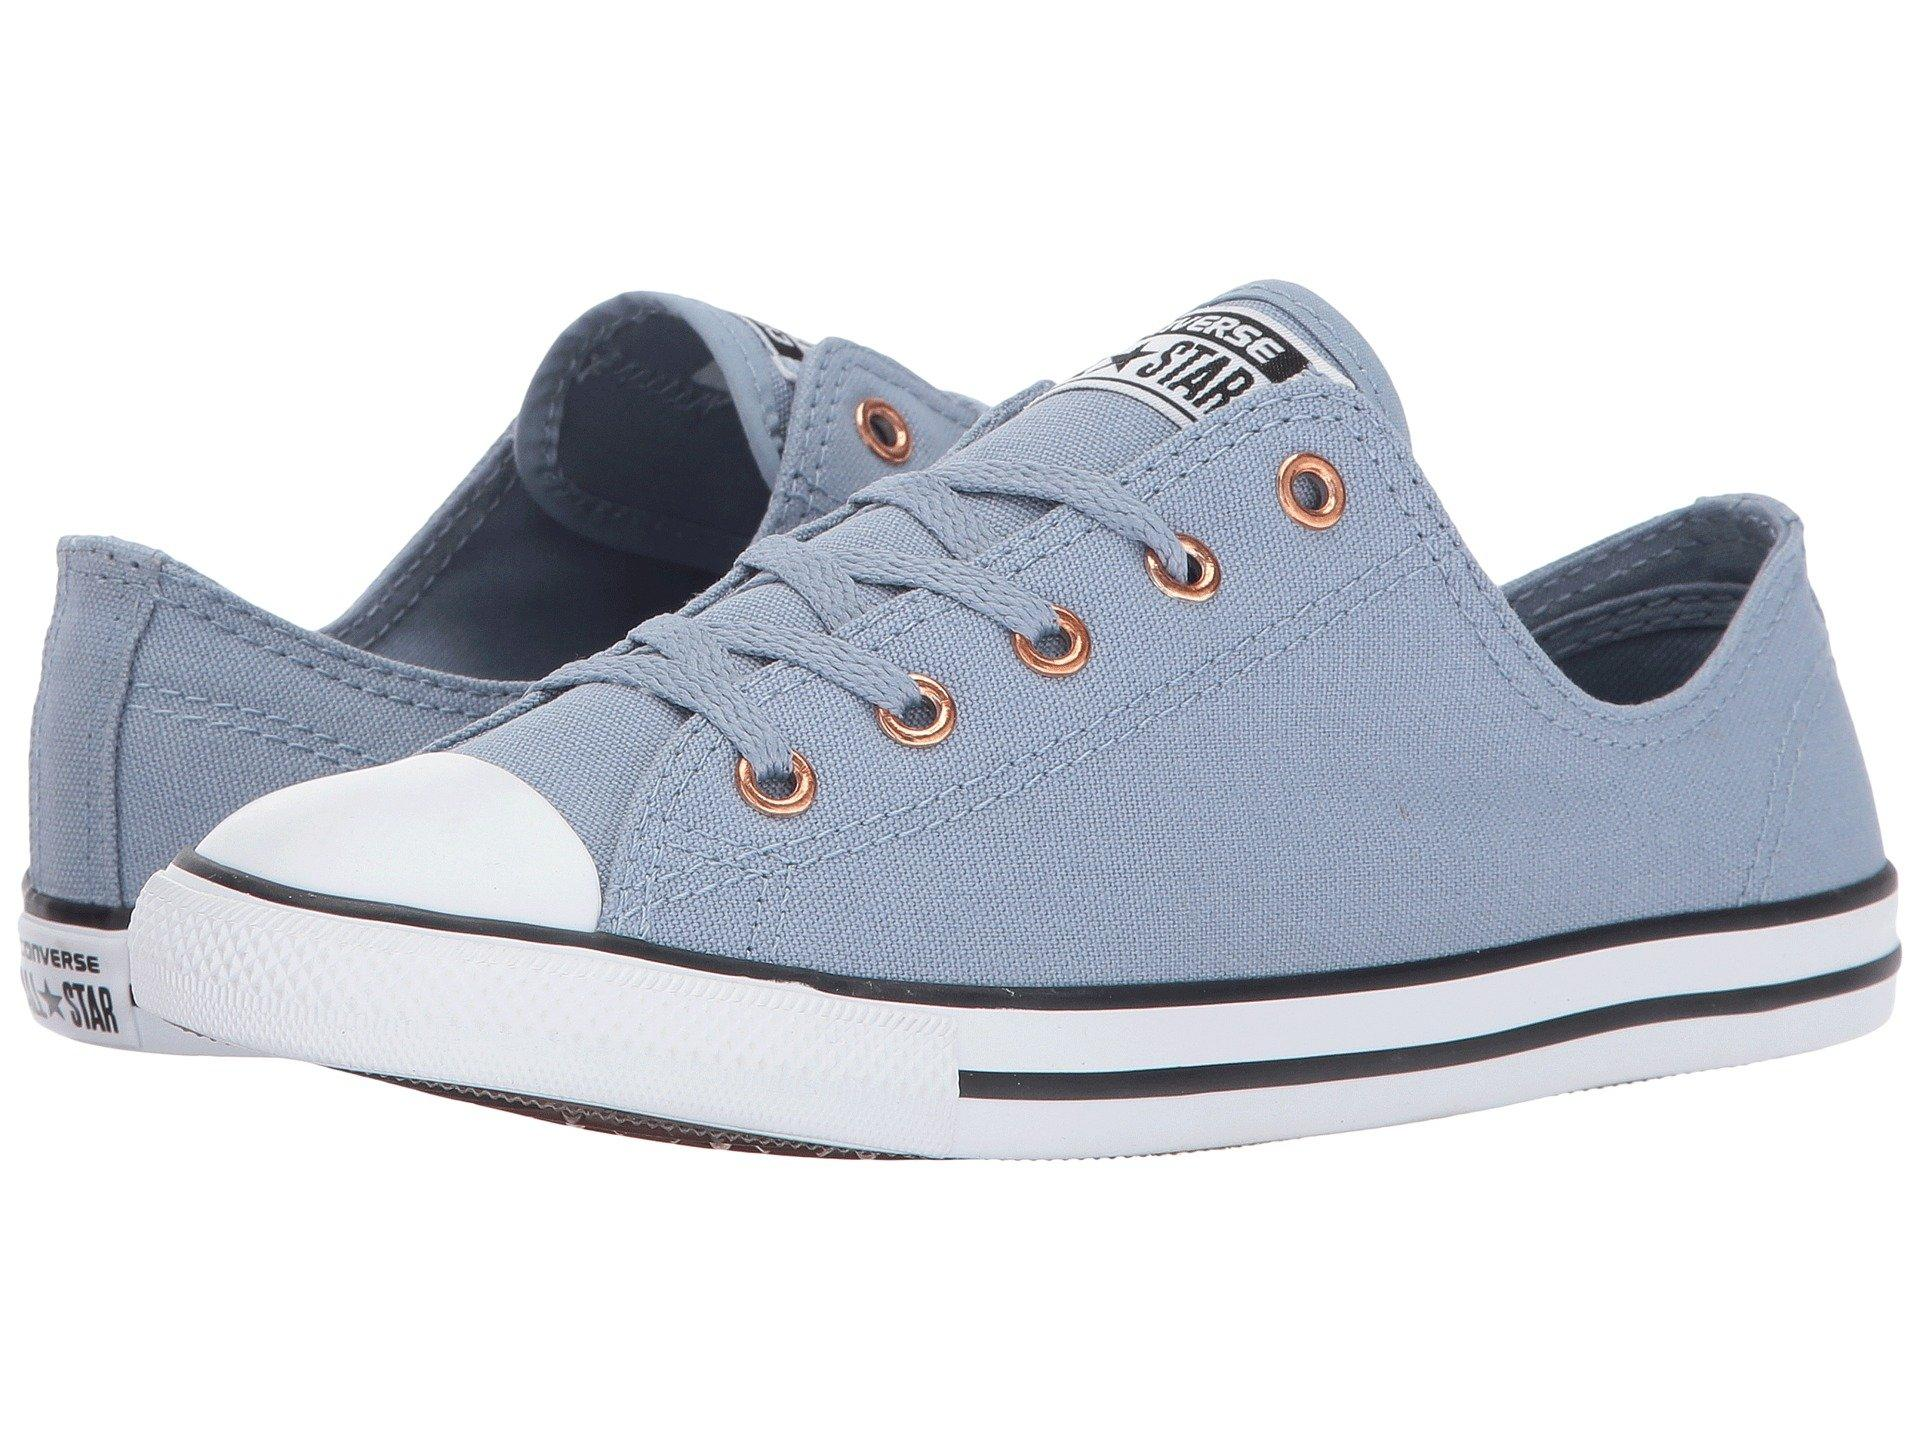 9c5c63868f01 Converse Chuck Taylor All Star Dainty - Ox In Blue Slate White Gold ...